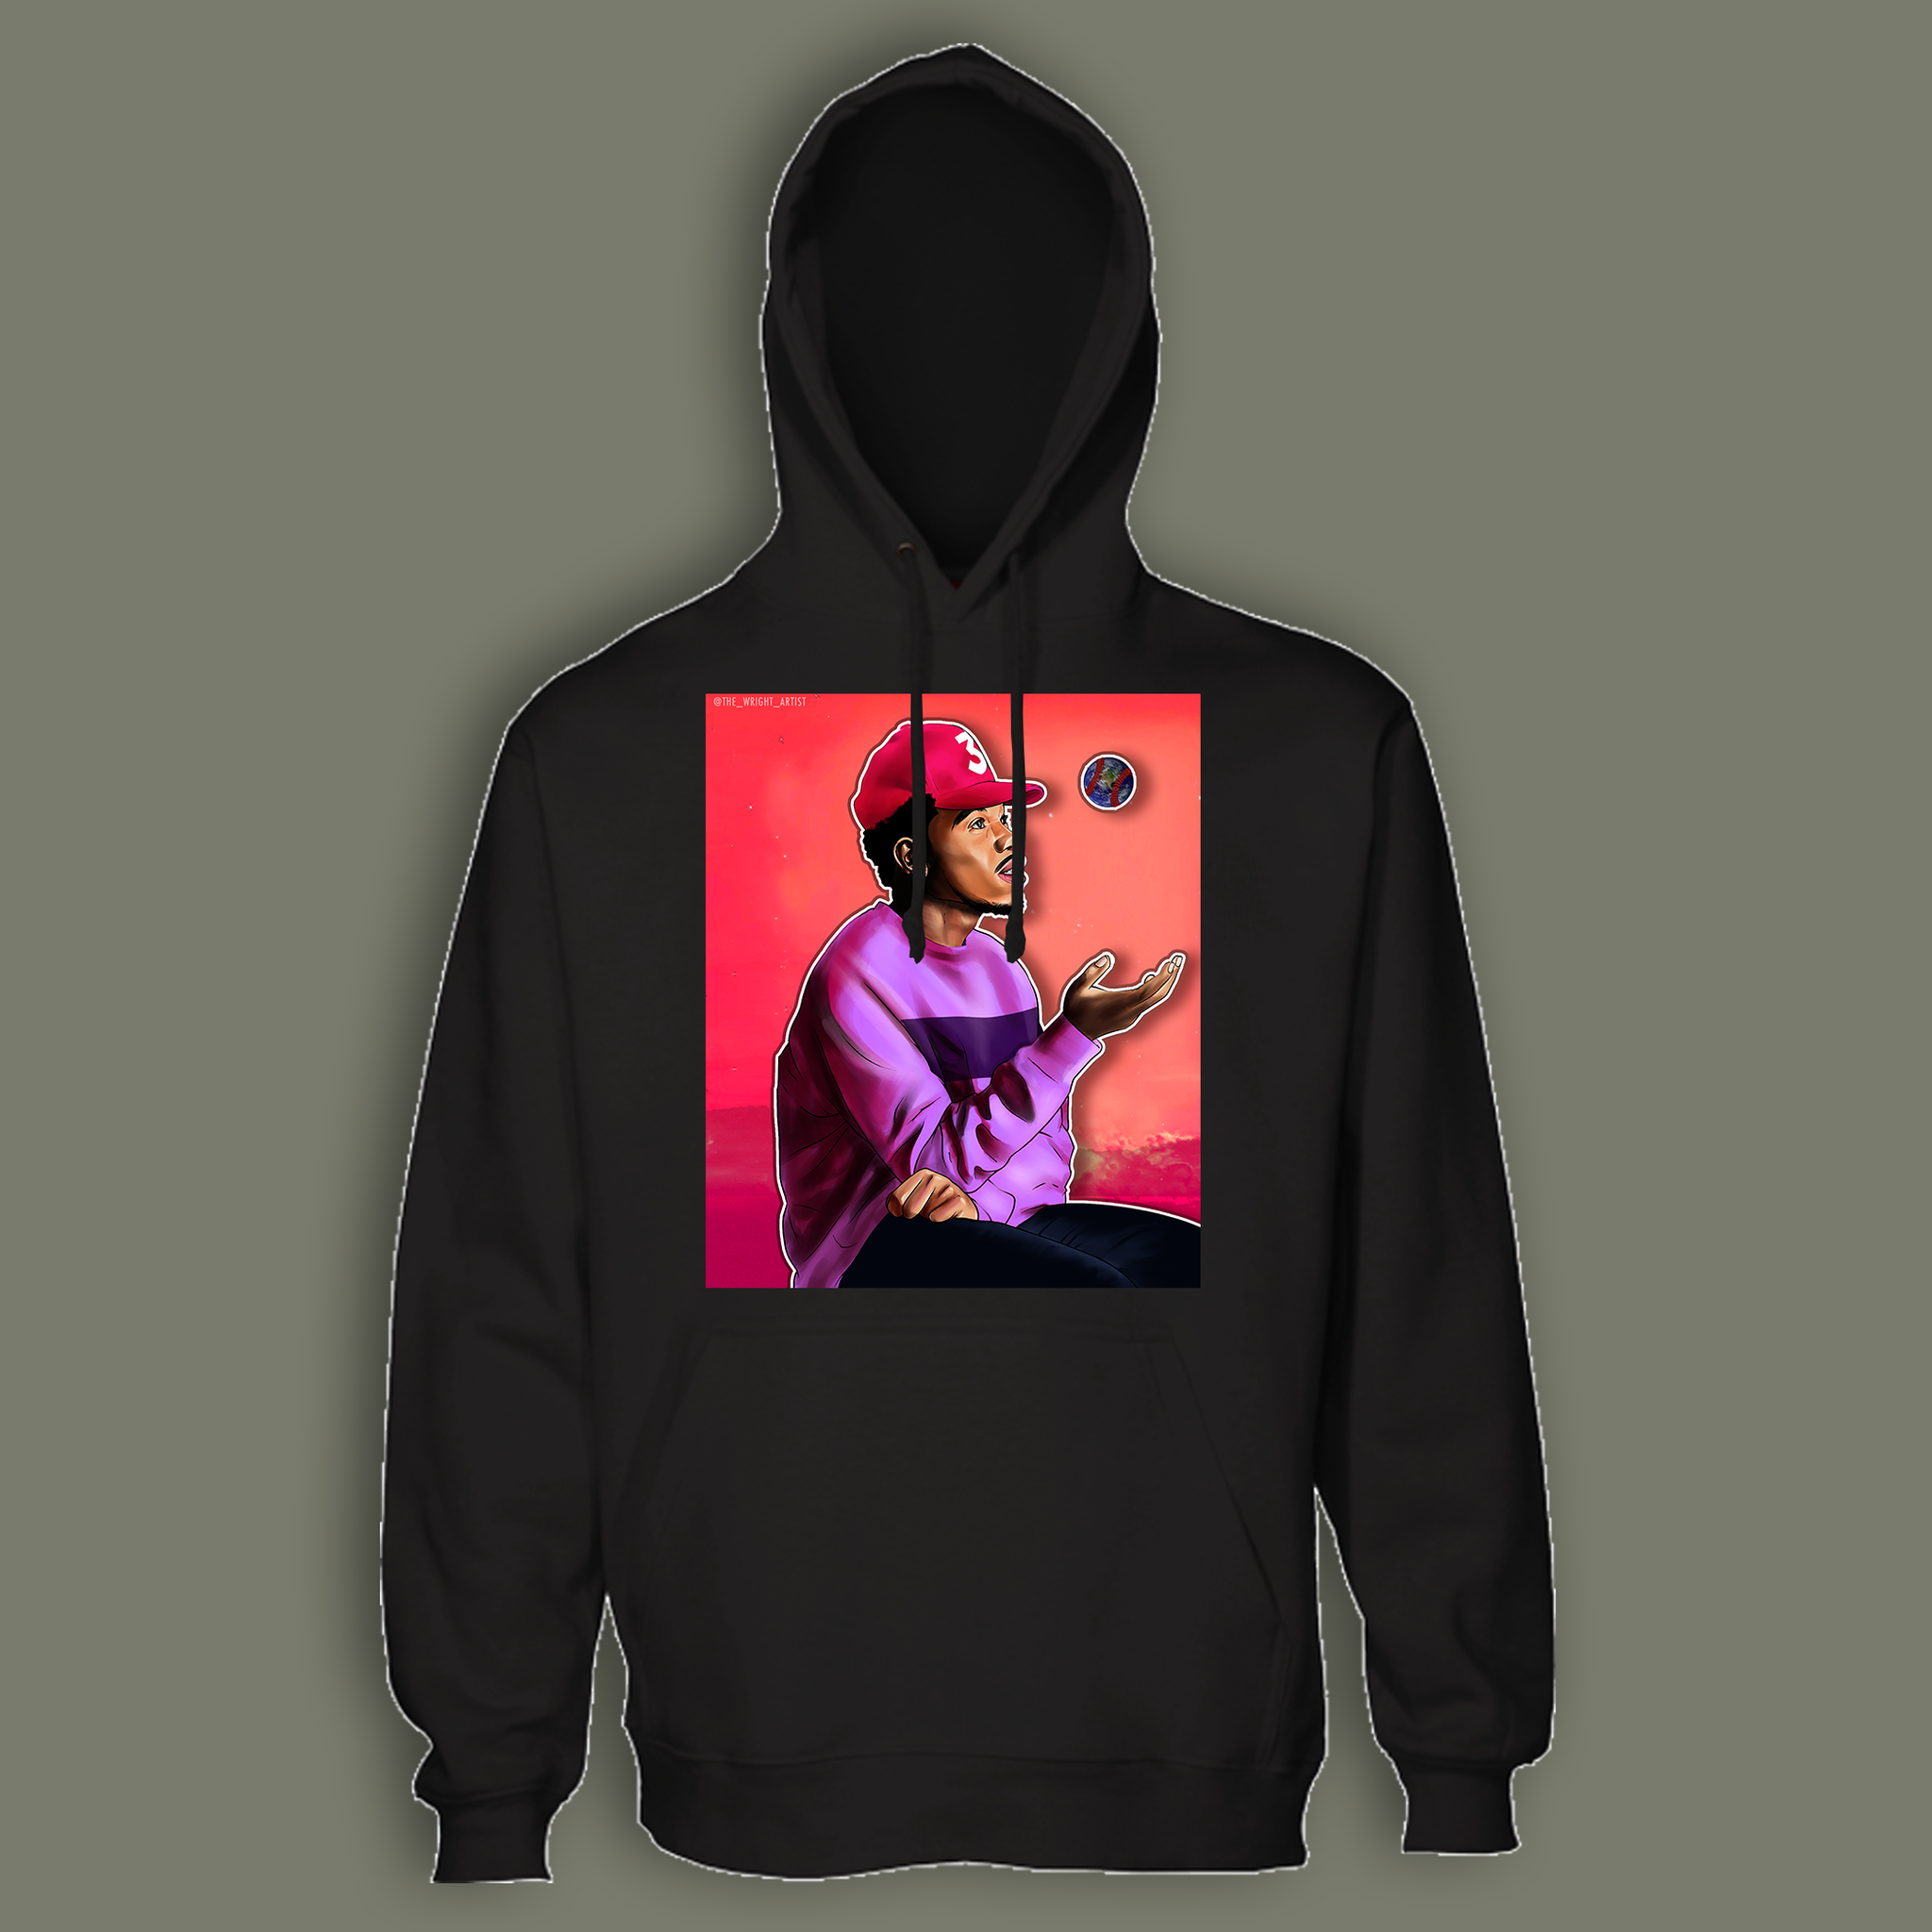 Chance The Rapper Hoodie